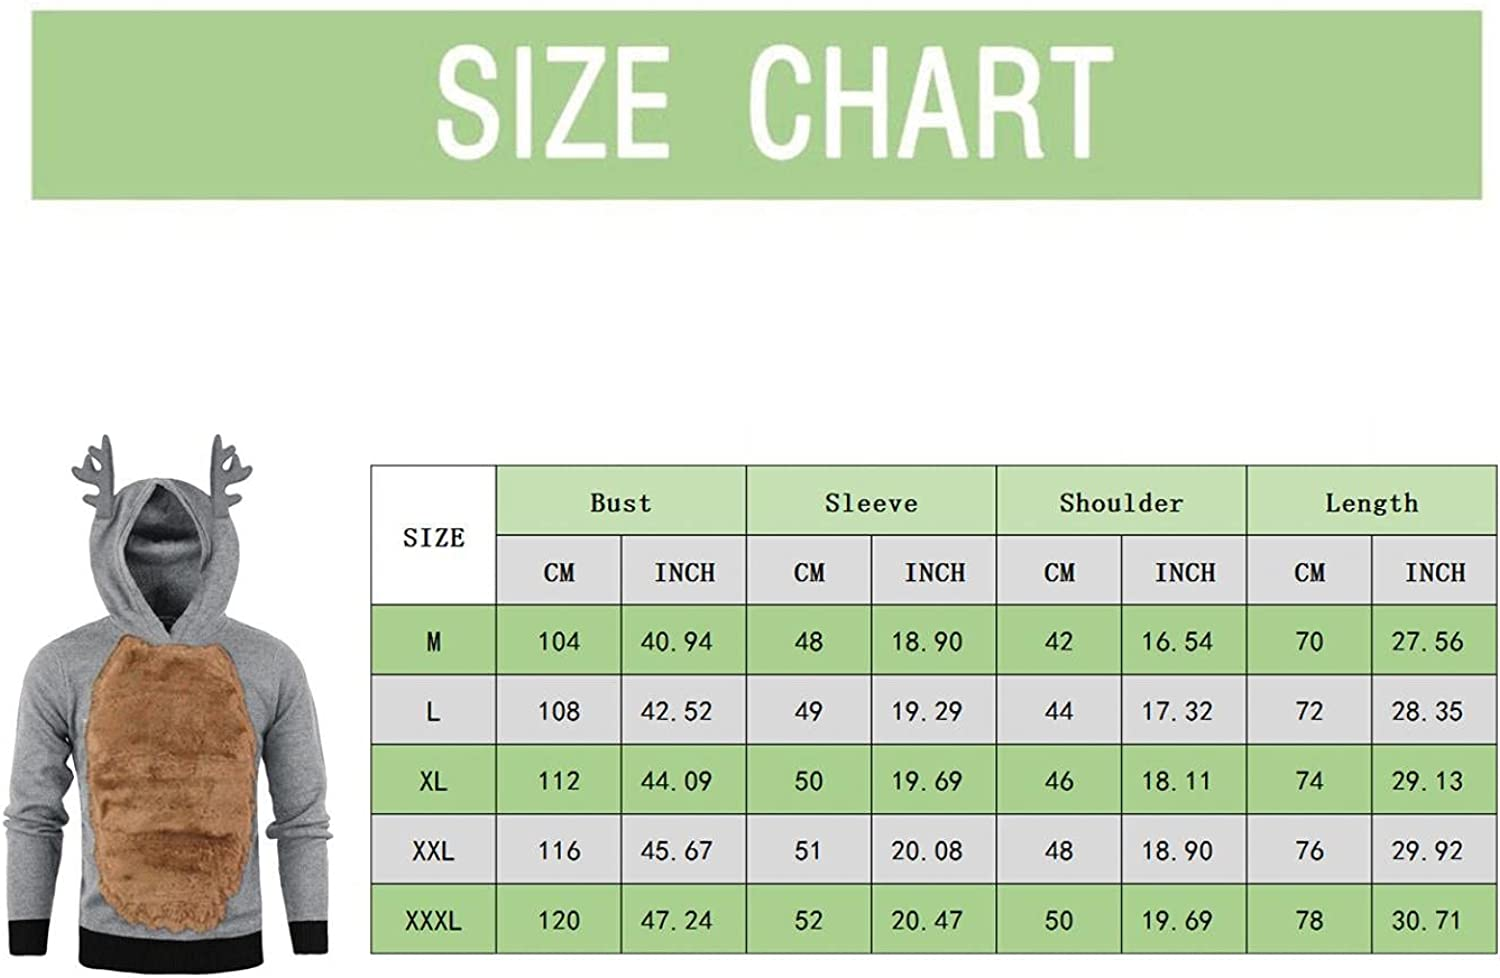 PHSHY Mens Winter Ugly Christmas Pullover Tops Fuzzy Fleece Hoodies Patchwork Color Comfy Soft Xmas Sweatshirts Blouses